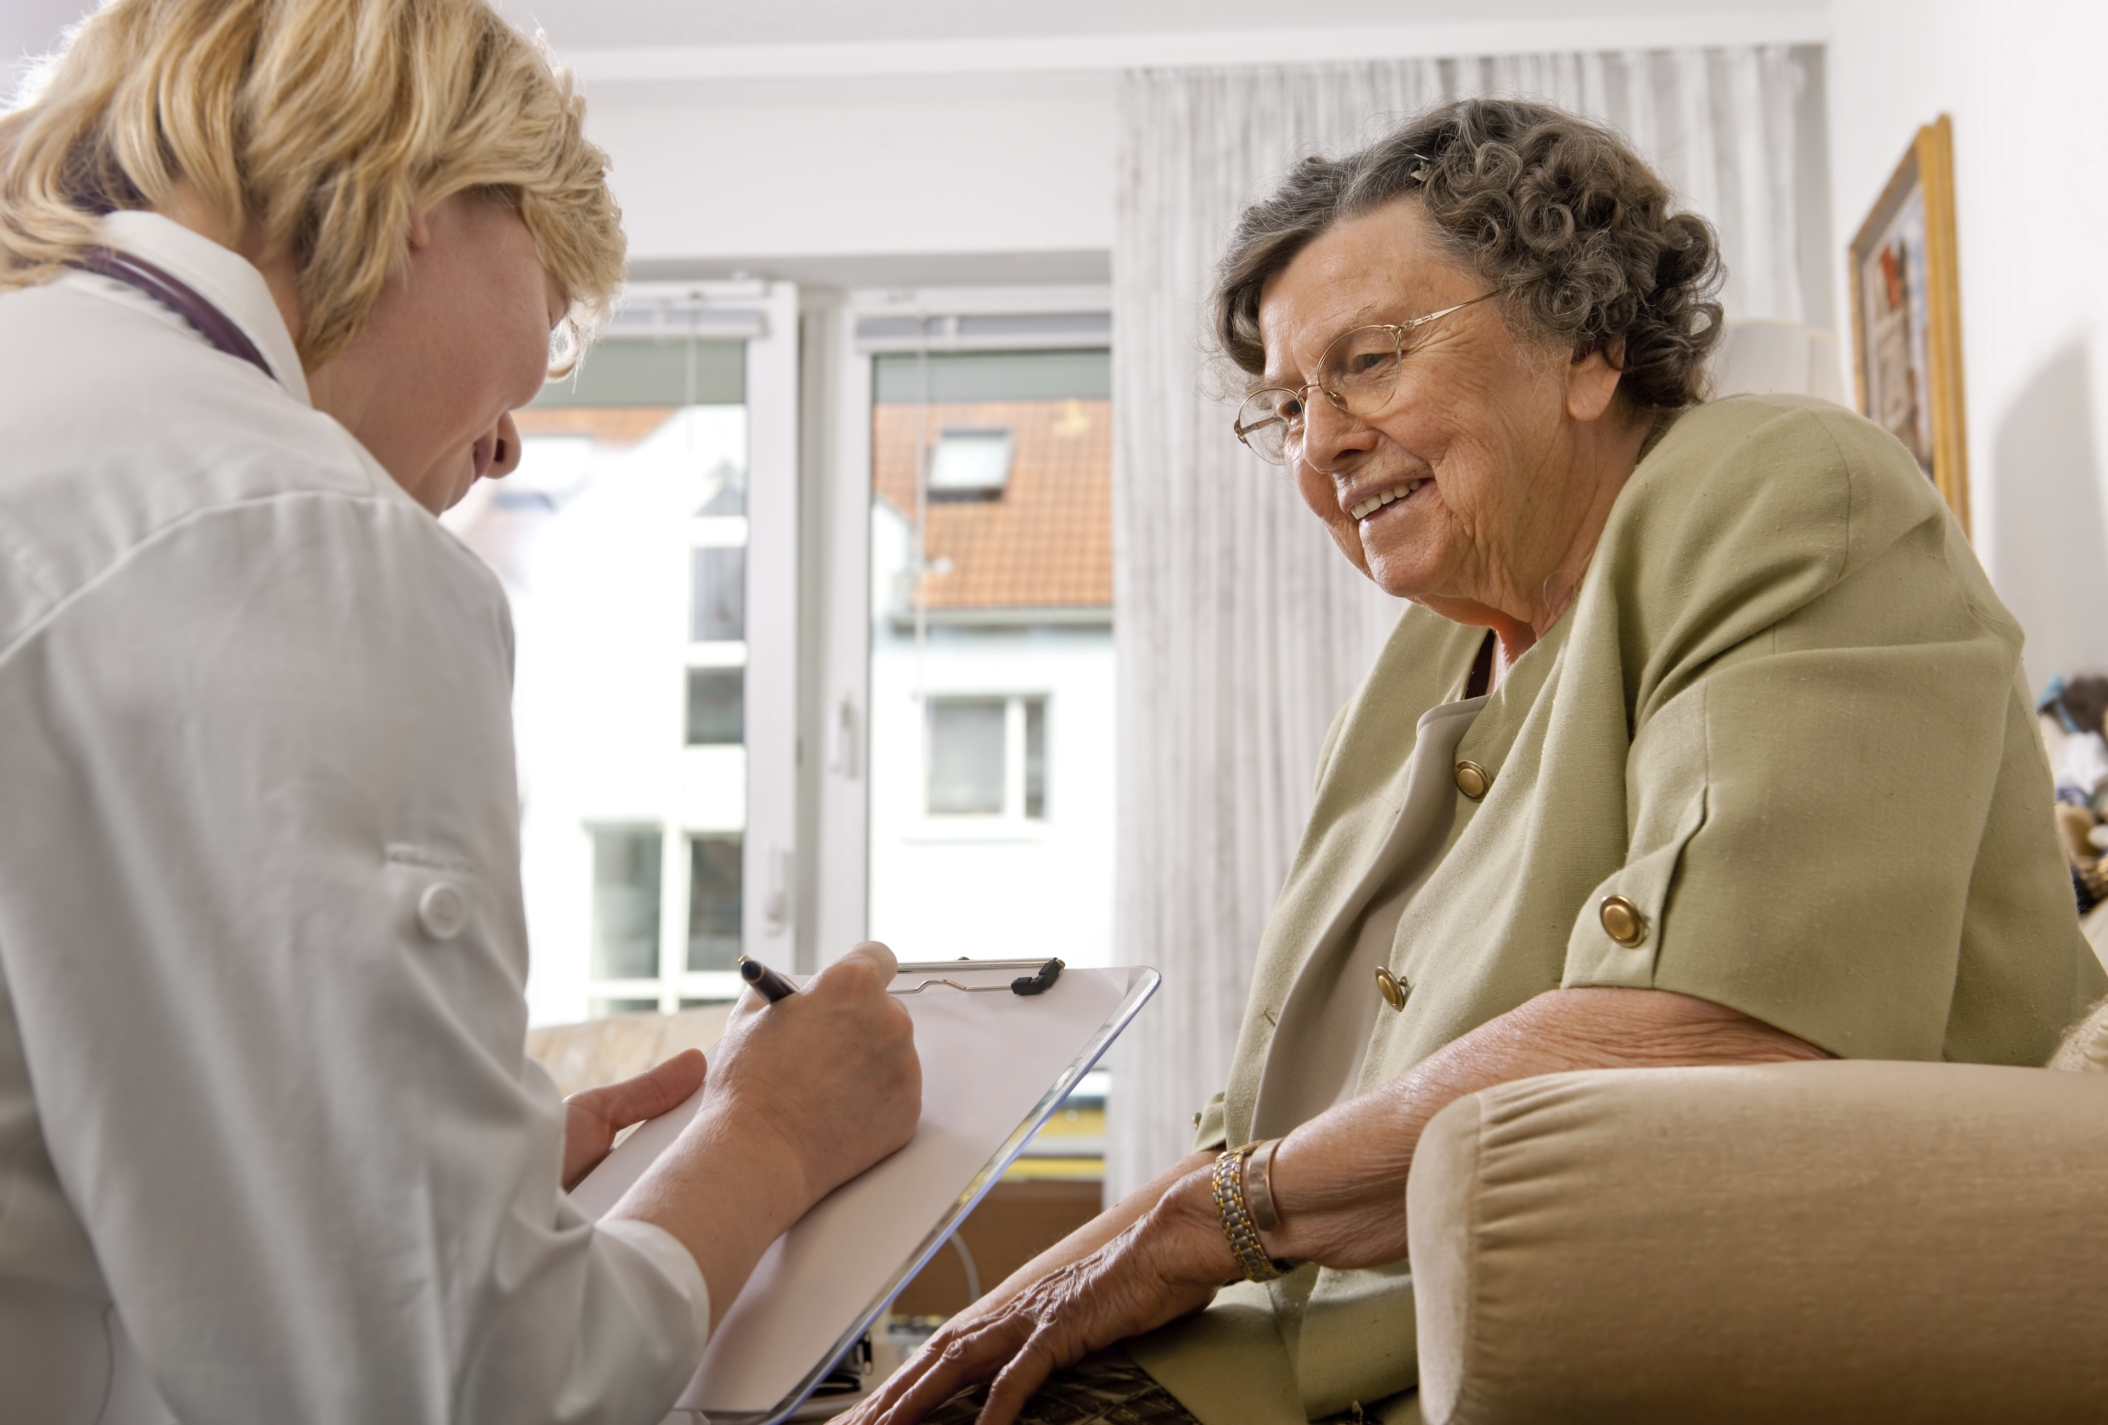 elderly interview Ways to answer interview questions about how well you work with people, keys for responding, and the overarching approach you should use.